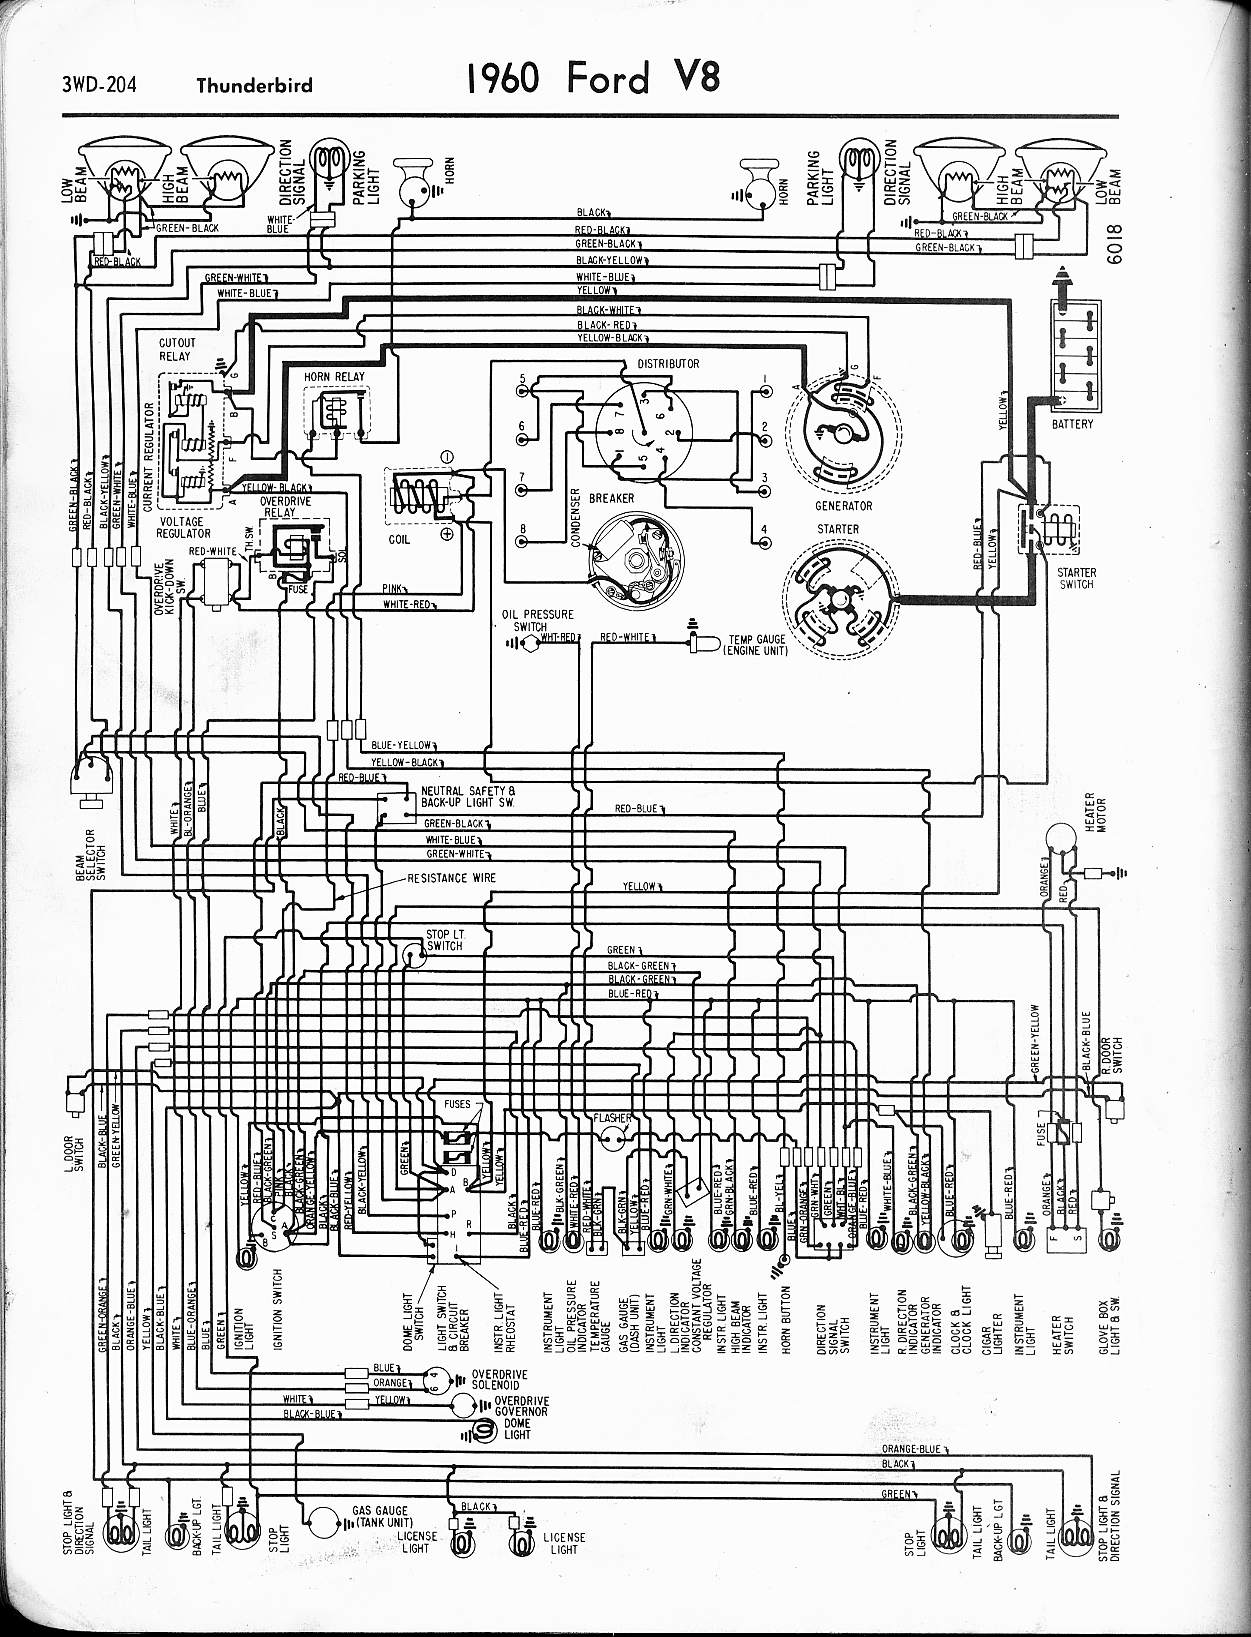 57 65 Ford Wiring Diagrams 1955 Ford Wiring Schematic Ford Wiring Schematic